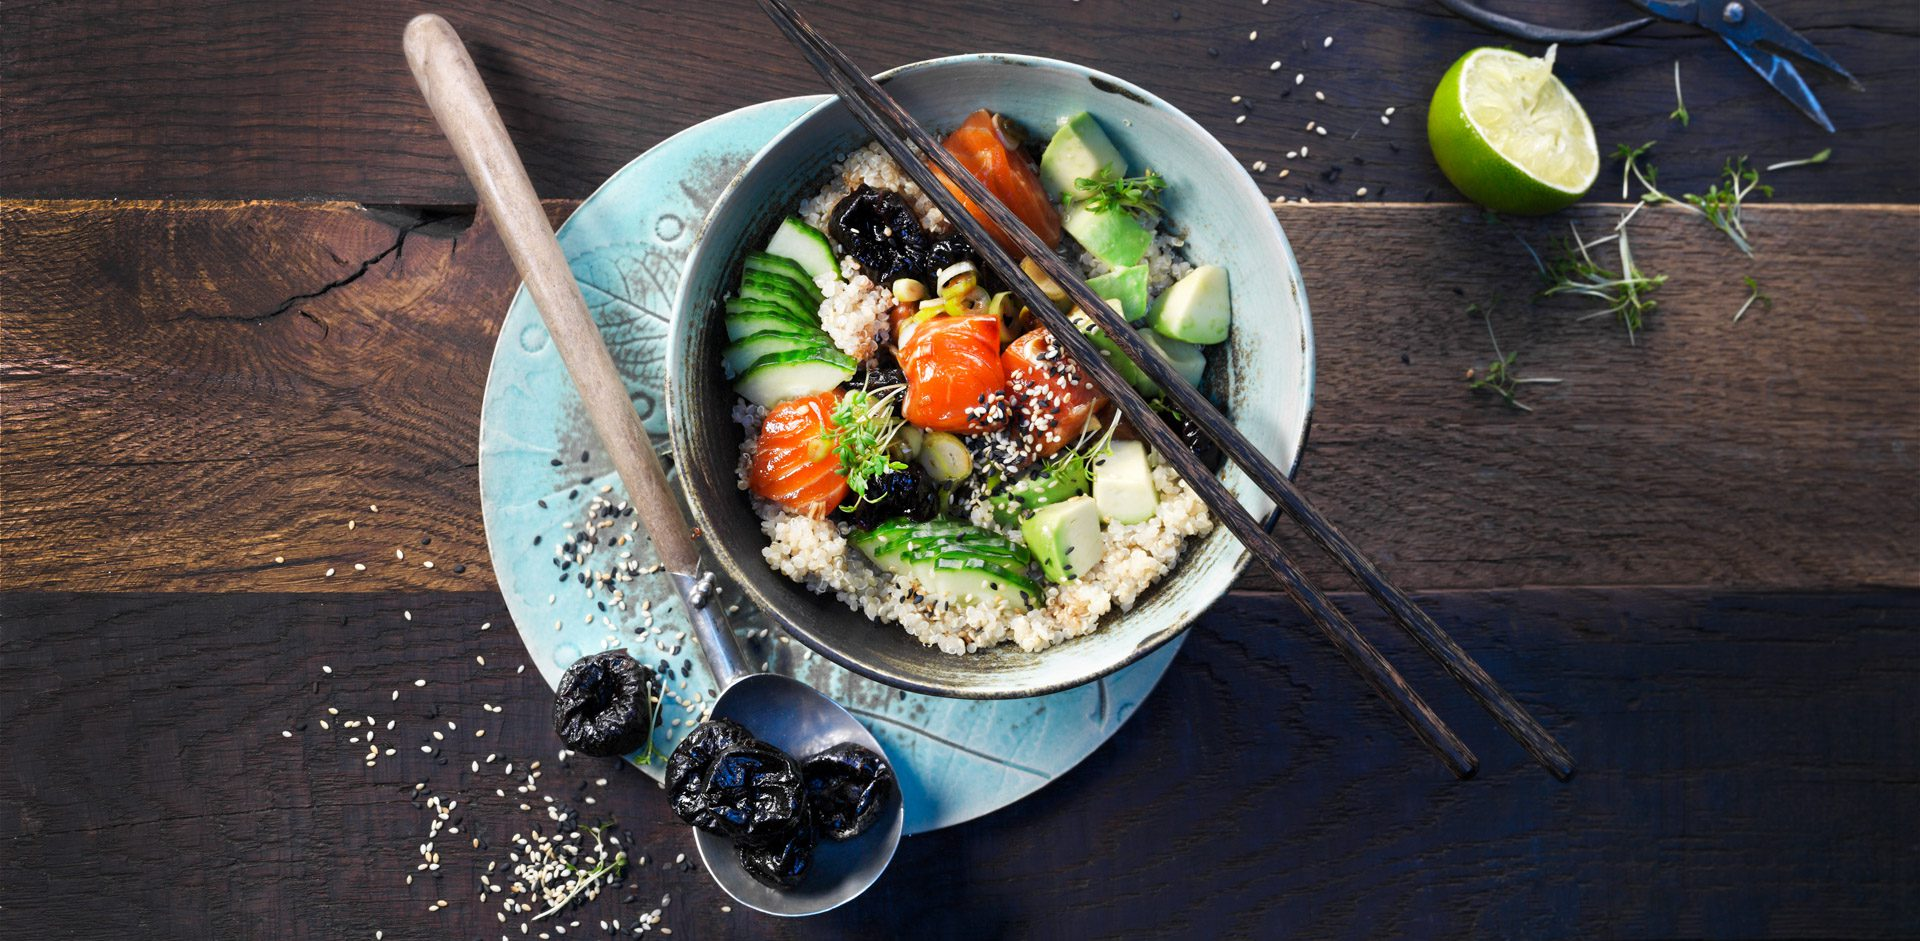 When mixed with soy sauce, prunes lend complimentary sweetness in place of sugar. In this poke bowl, the flavors of soy sauce and sesame come to life with bits of sweet prunes and peppery greens